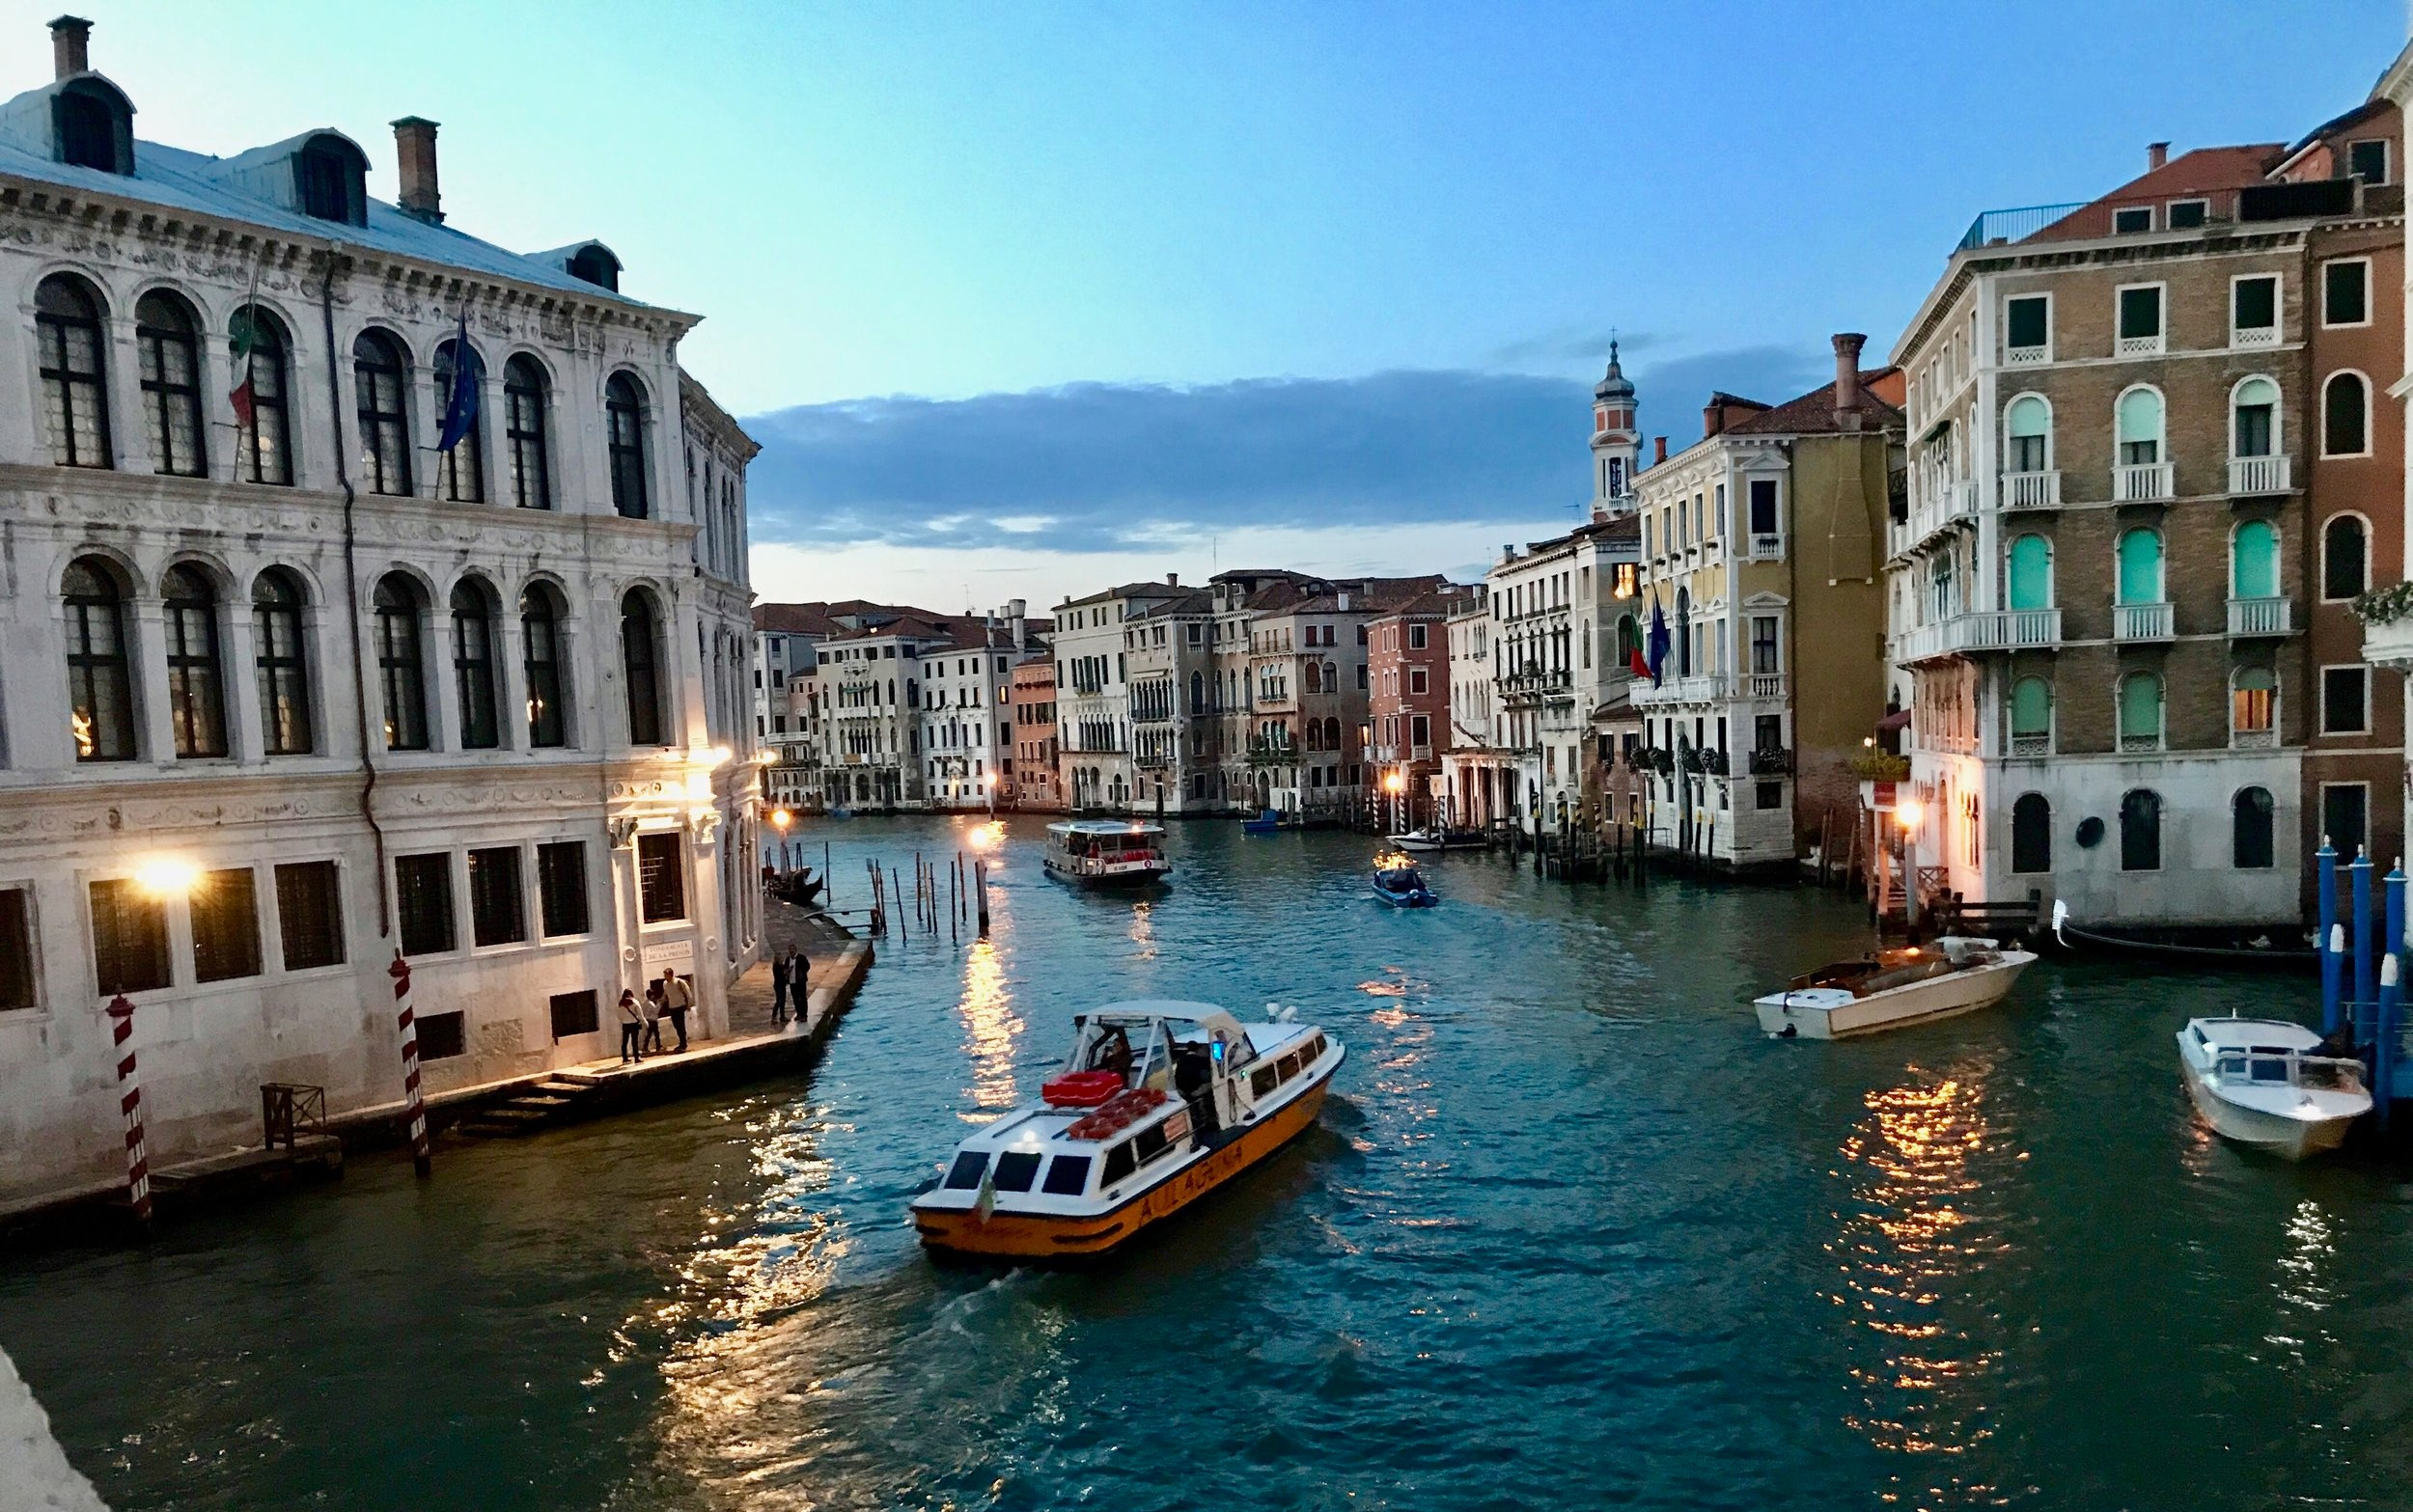 The Grand Canal in Venice at dusk